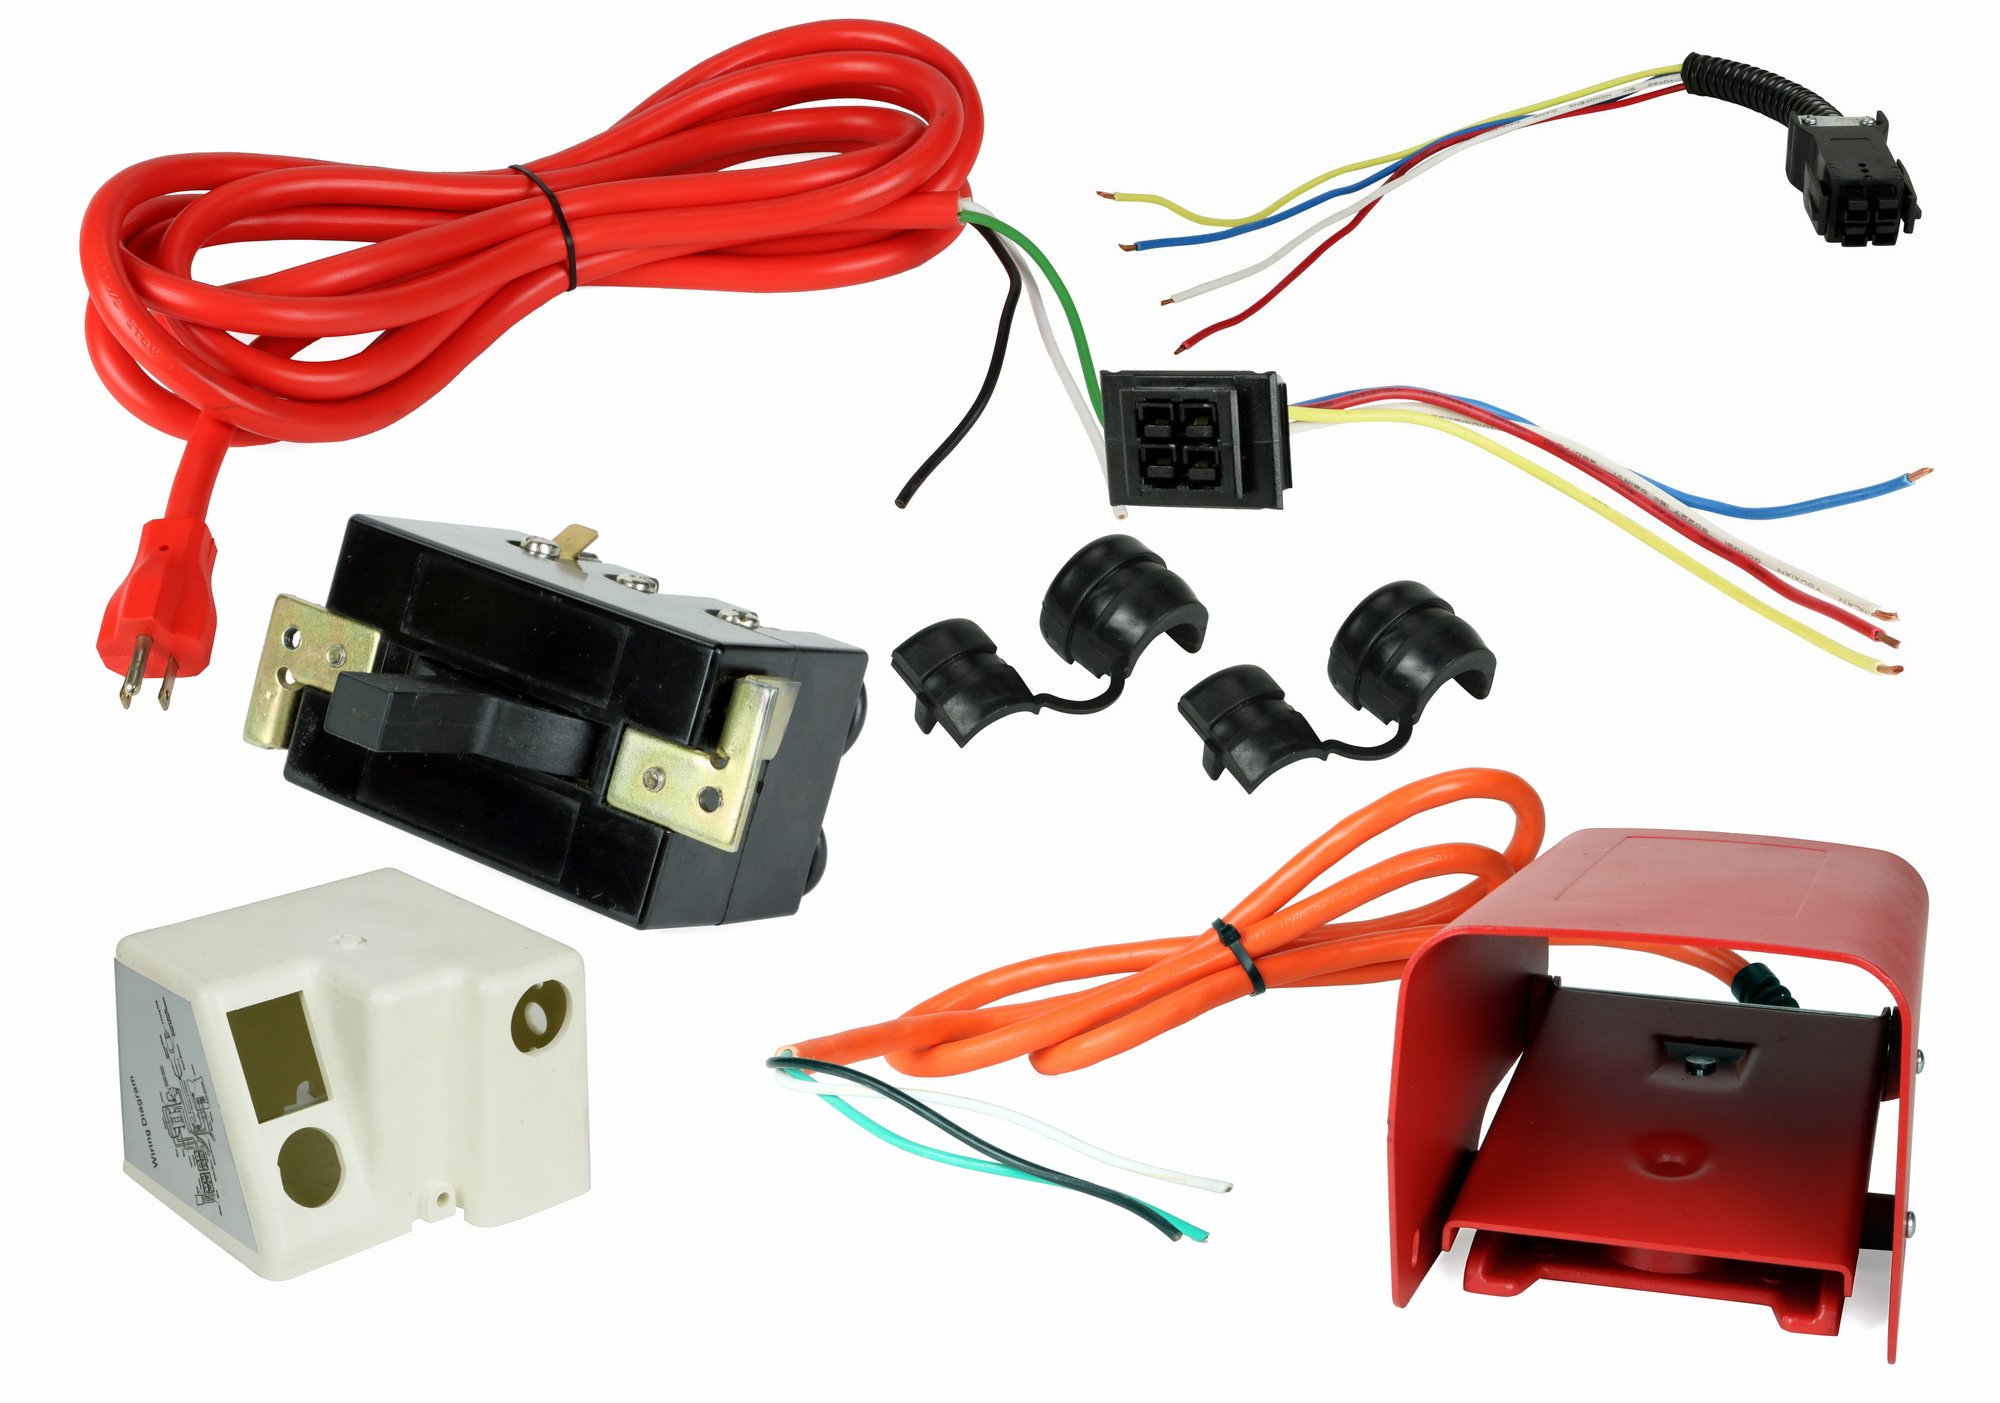 ridgid� 300 updrade kit convert old style 300 to t2 fit 46740 44505details about ridgid� 300 updrade kit convert old style 300 to t2 fit 46740 44505 36642